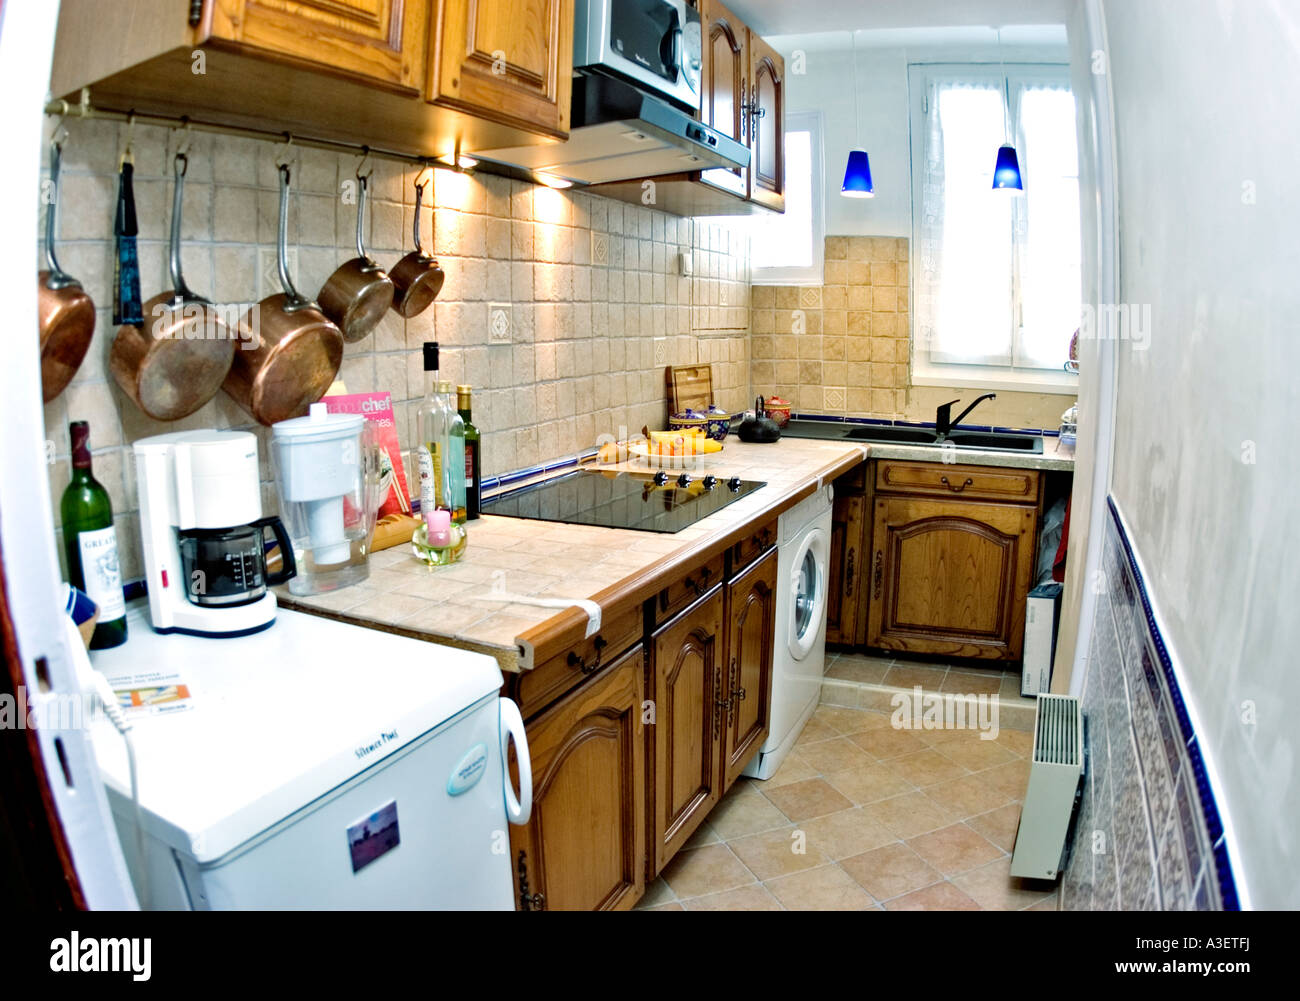 Kitchen Makeover Stock Photos & Kitchen Makeover Stock Images - Alamy